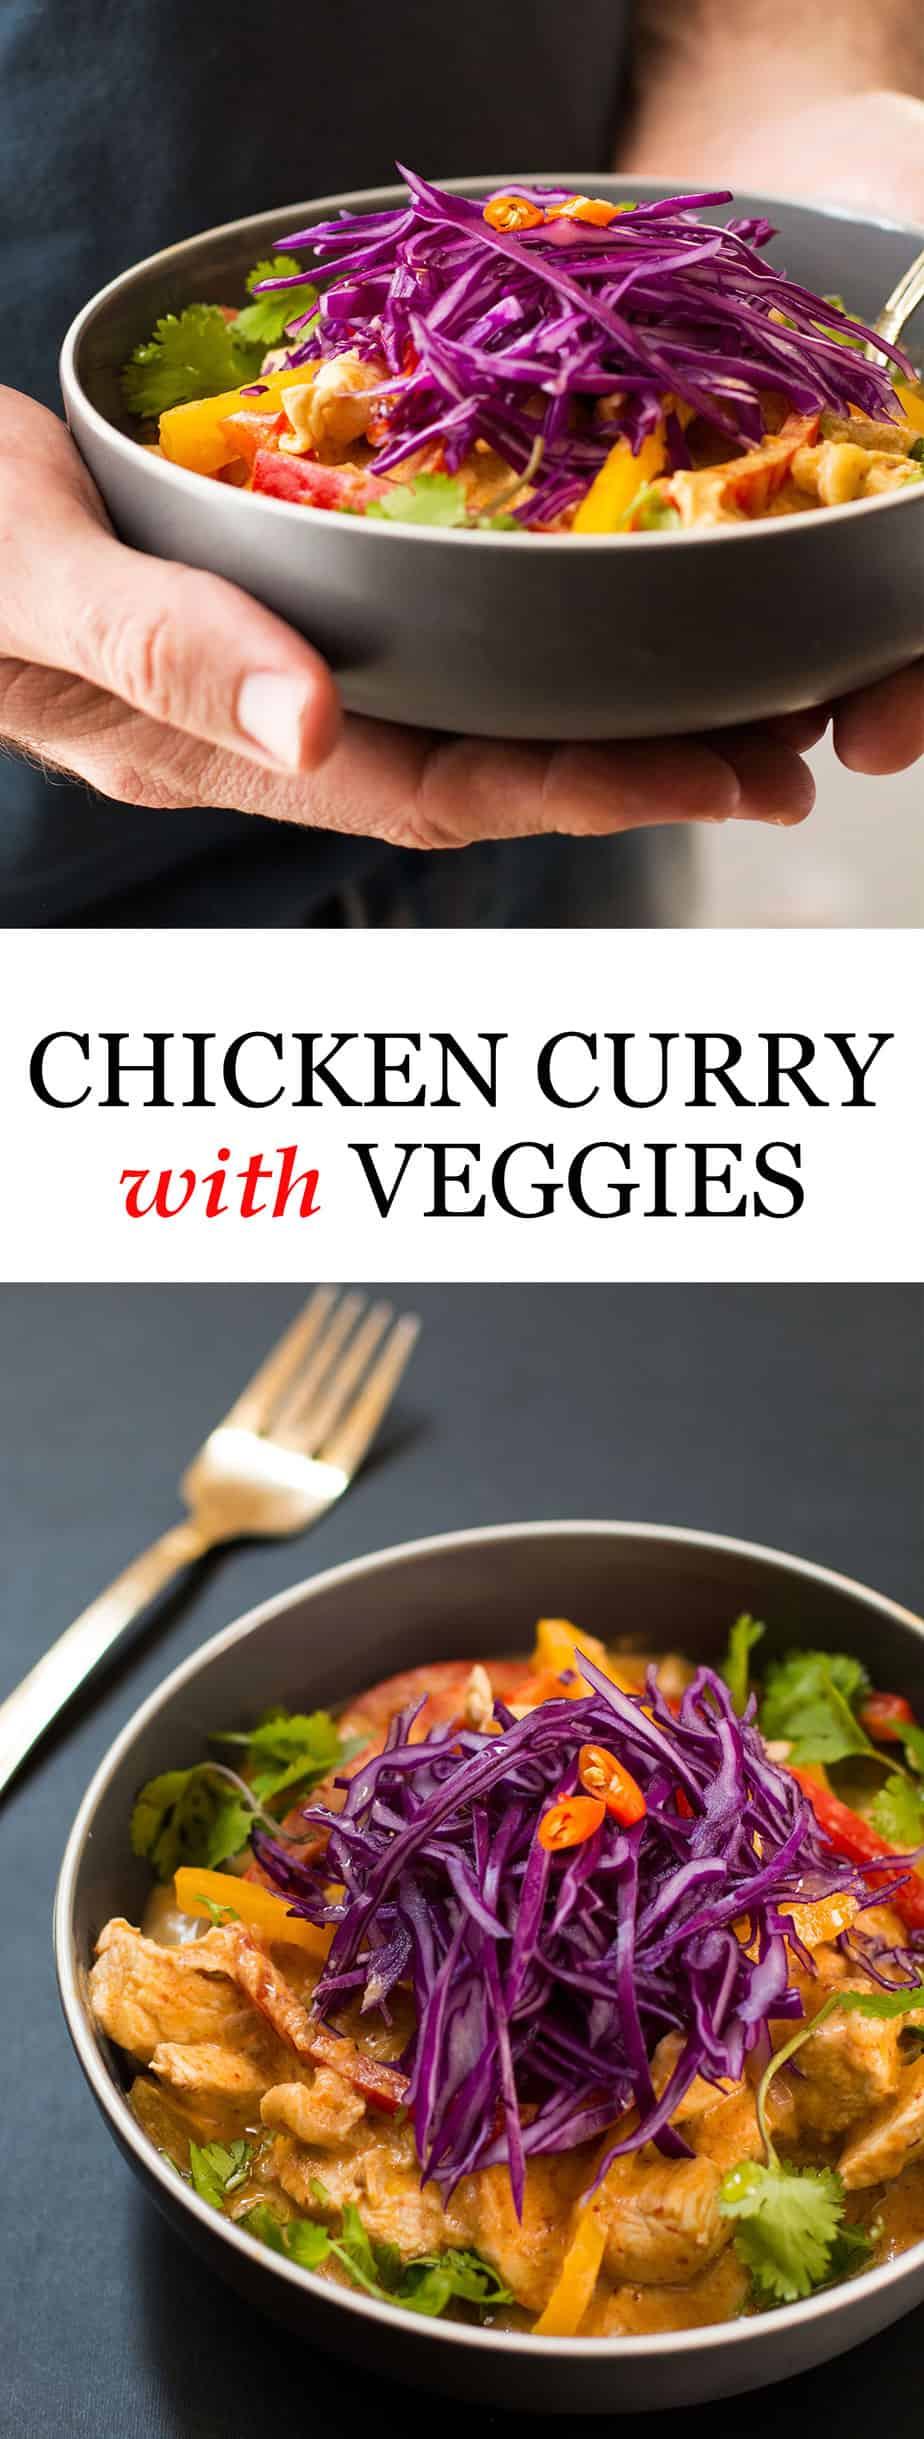 RED-THAI-CHICKEN-CURRY-VEGETABLES-RECIPE